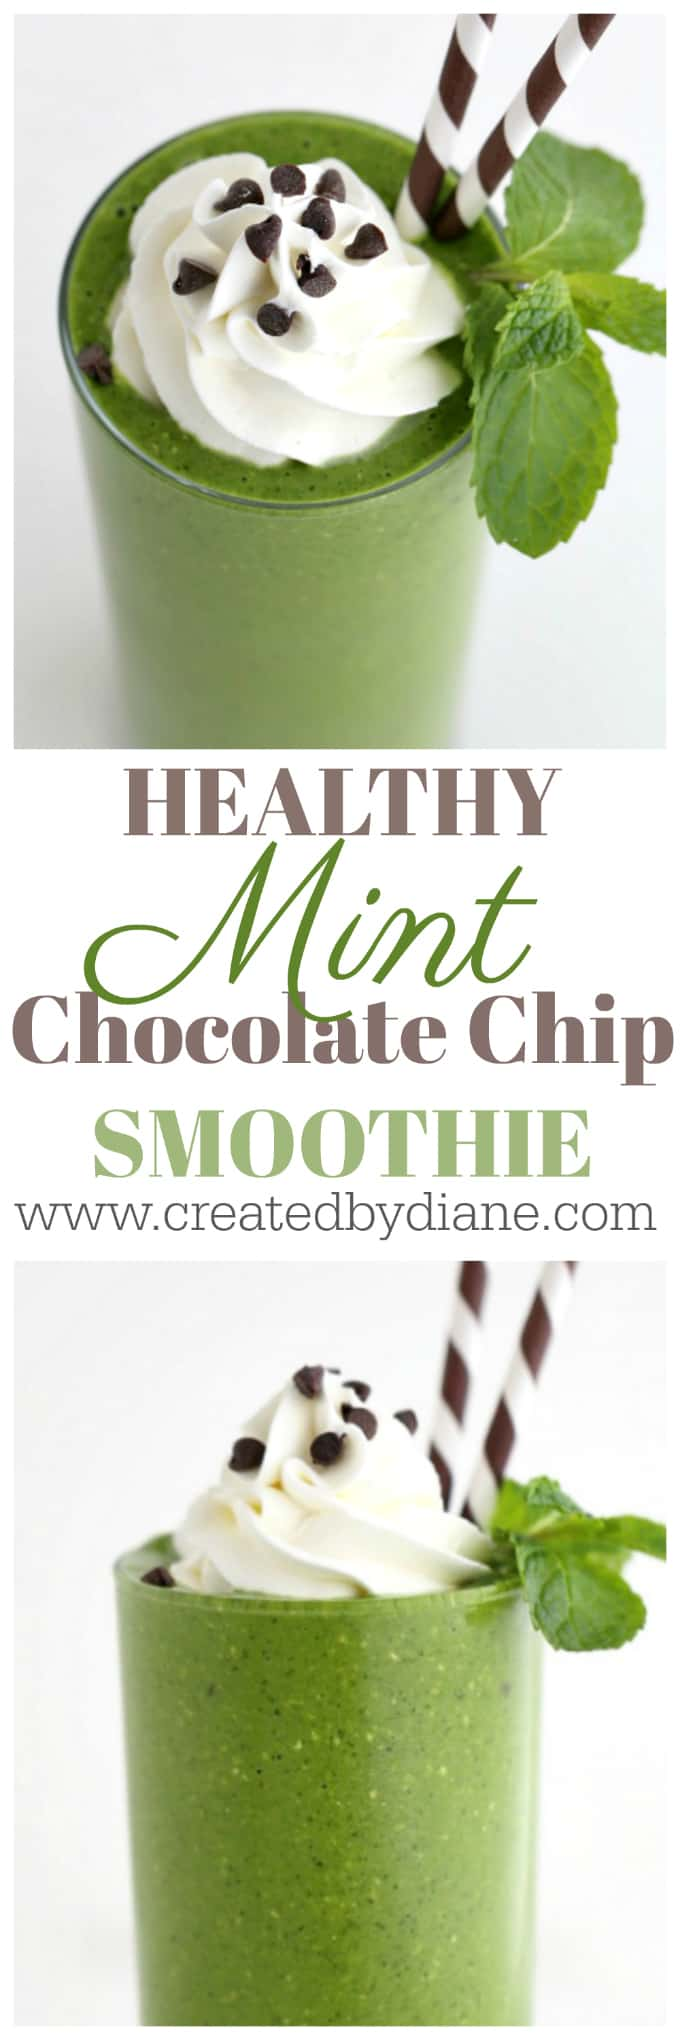 HEALTHY mint chocolate chip GREEN Smoothie recipes www.createdbydiane.com